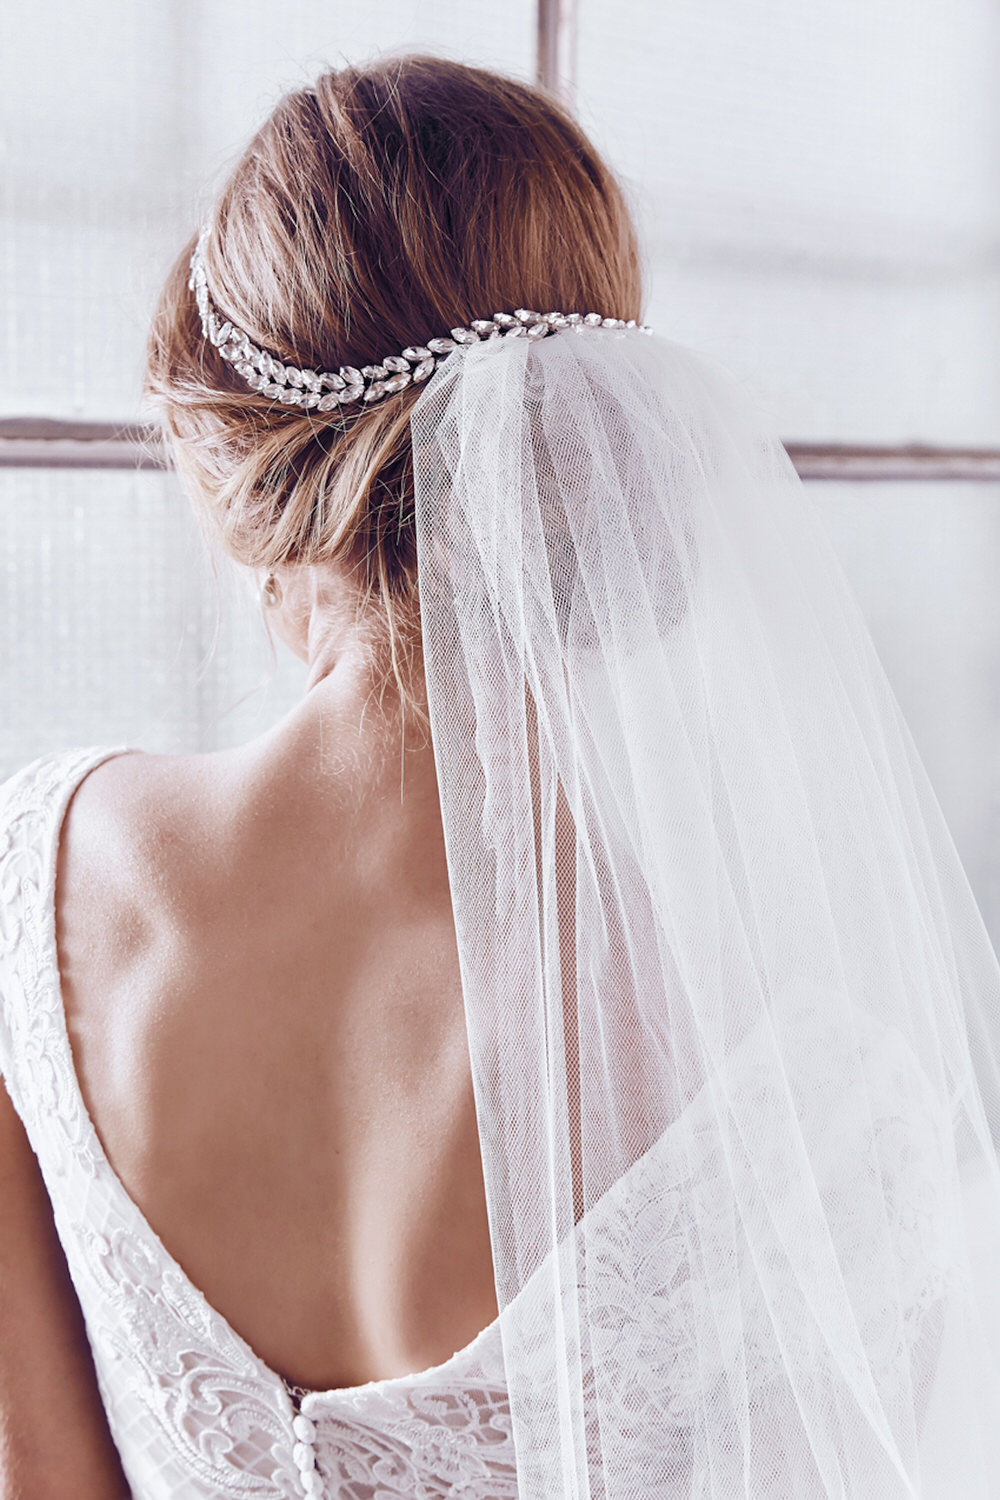 bridal accessories you'll need on your wedding day